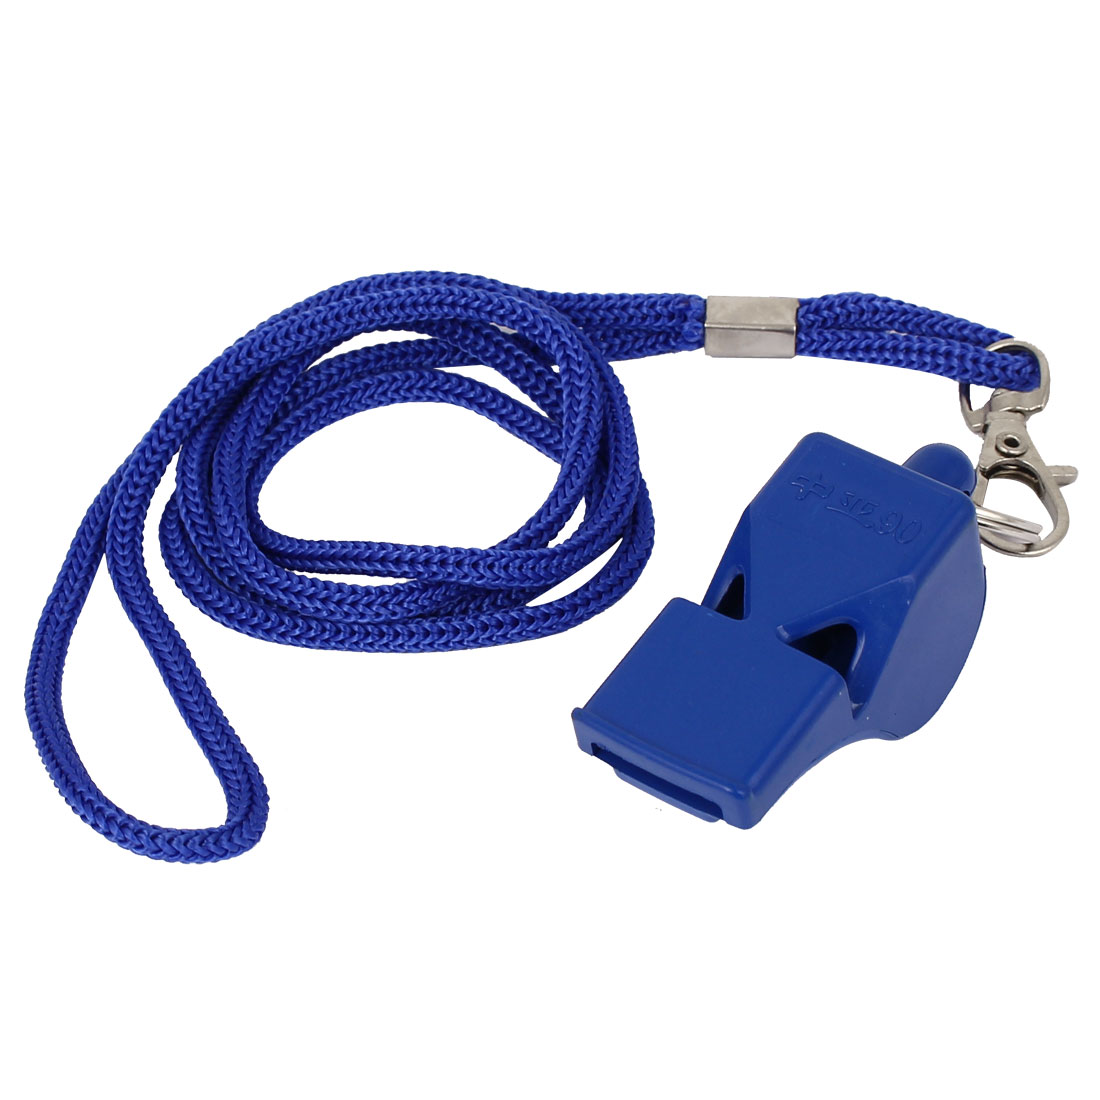 Outdoor Sports Match Coach Lobster Clasp Nylon Neck Lanyard Referee Whistle Blue